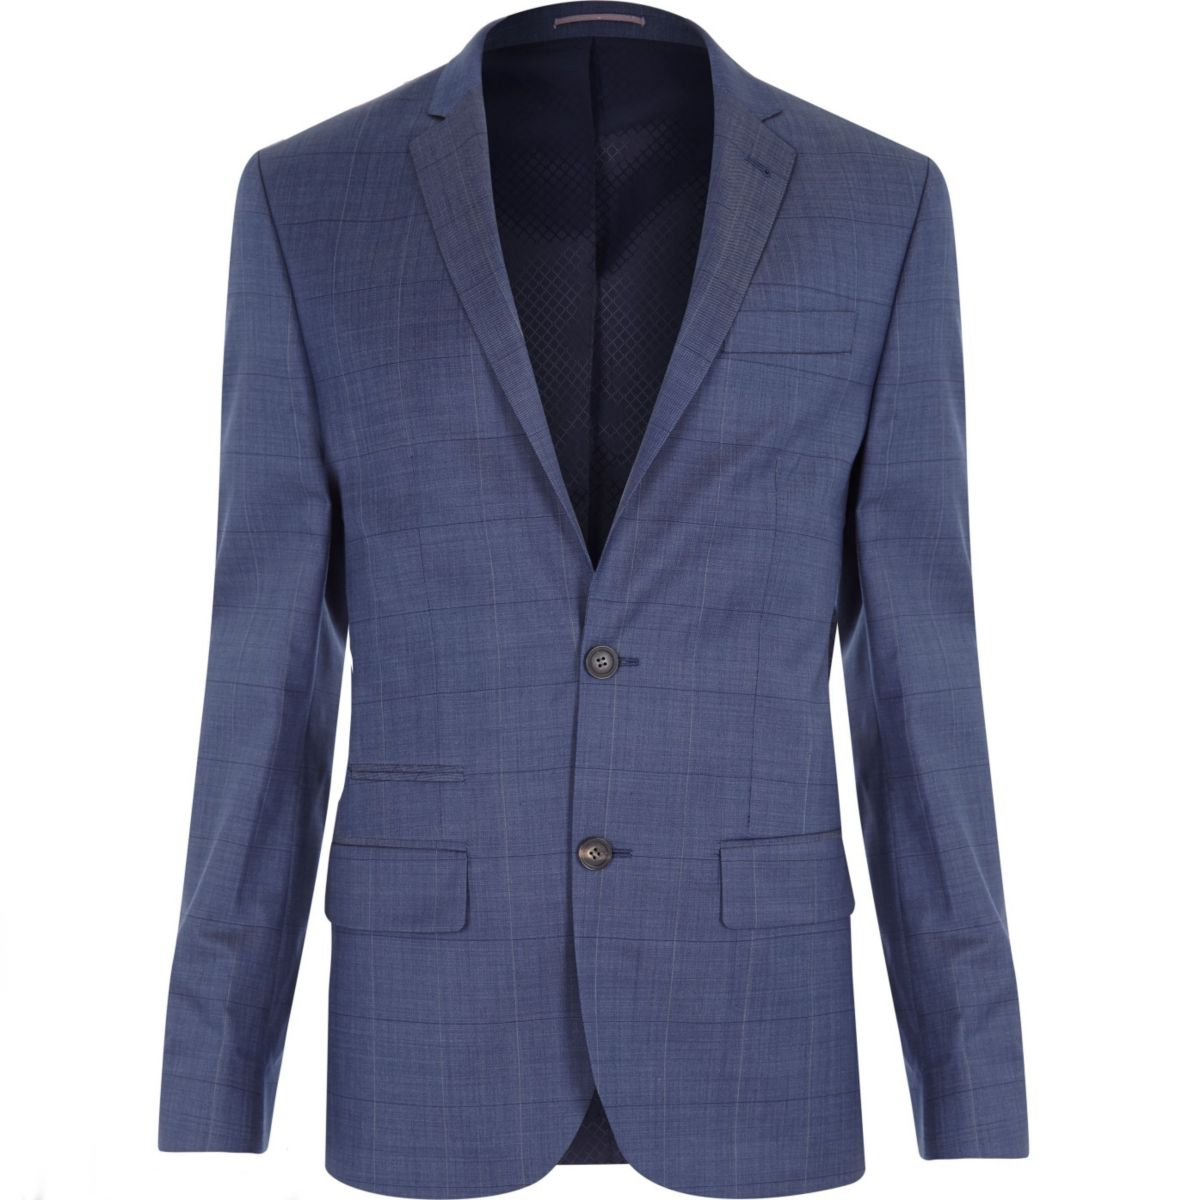 Light navy subtle check slim fit suit jacket